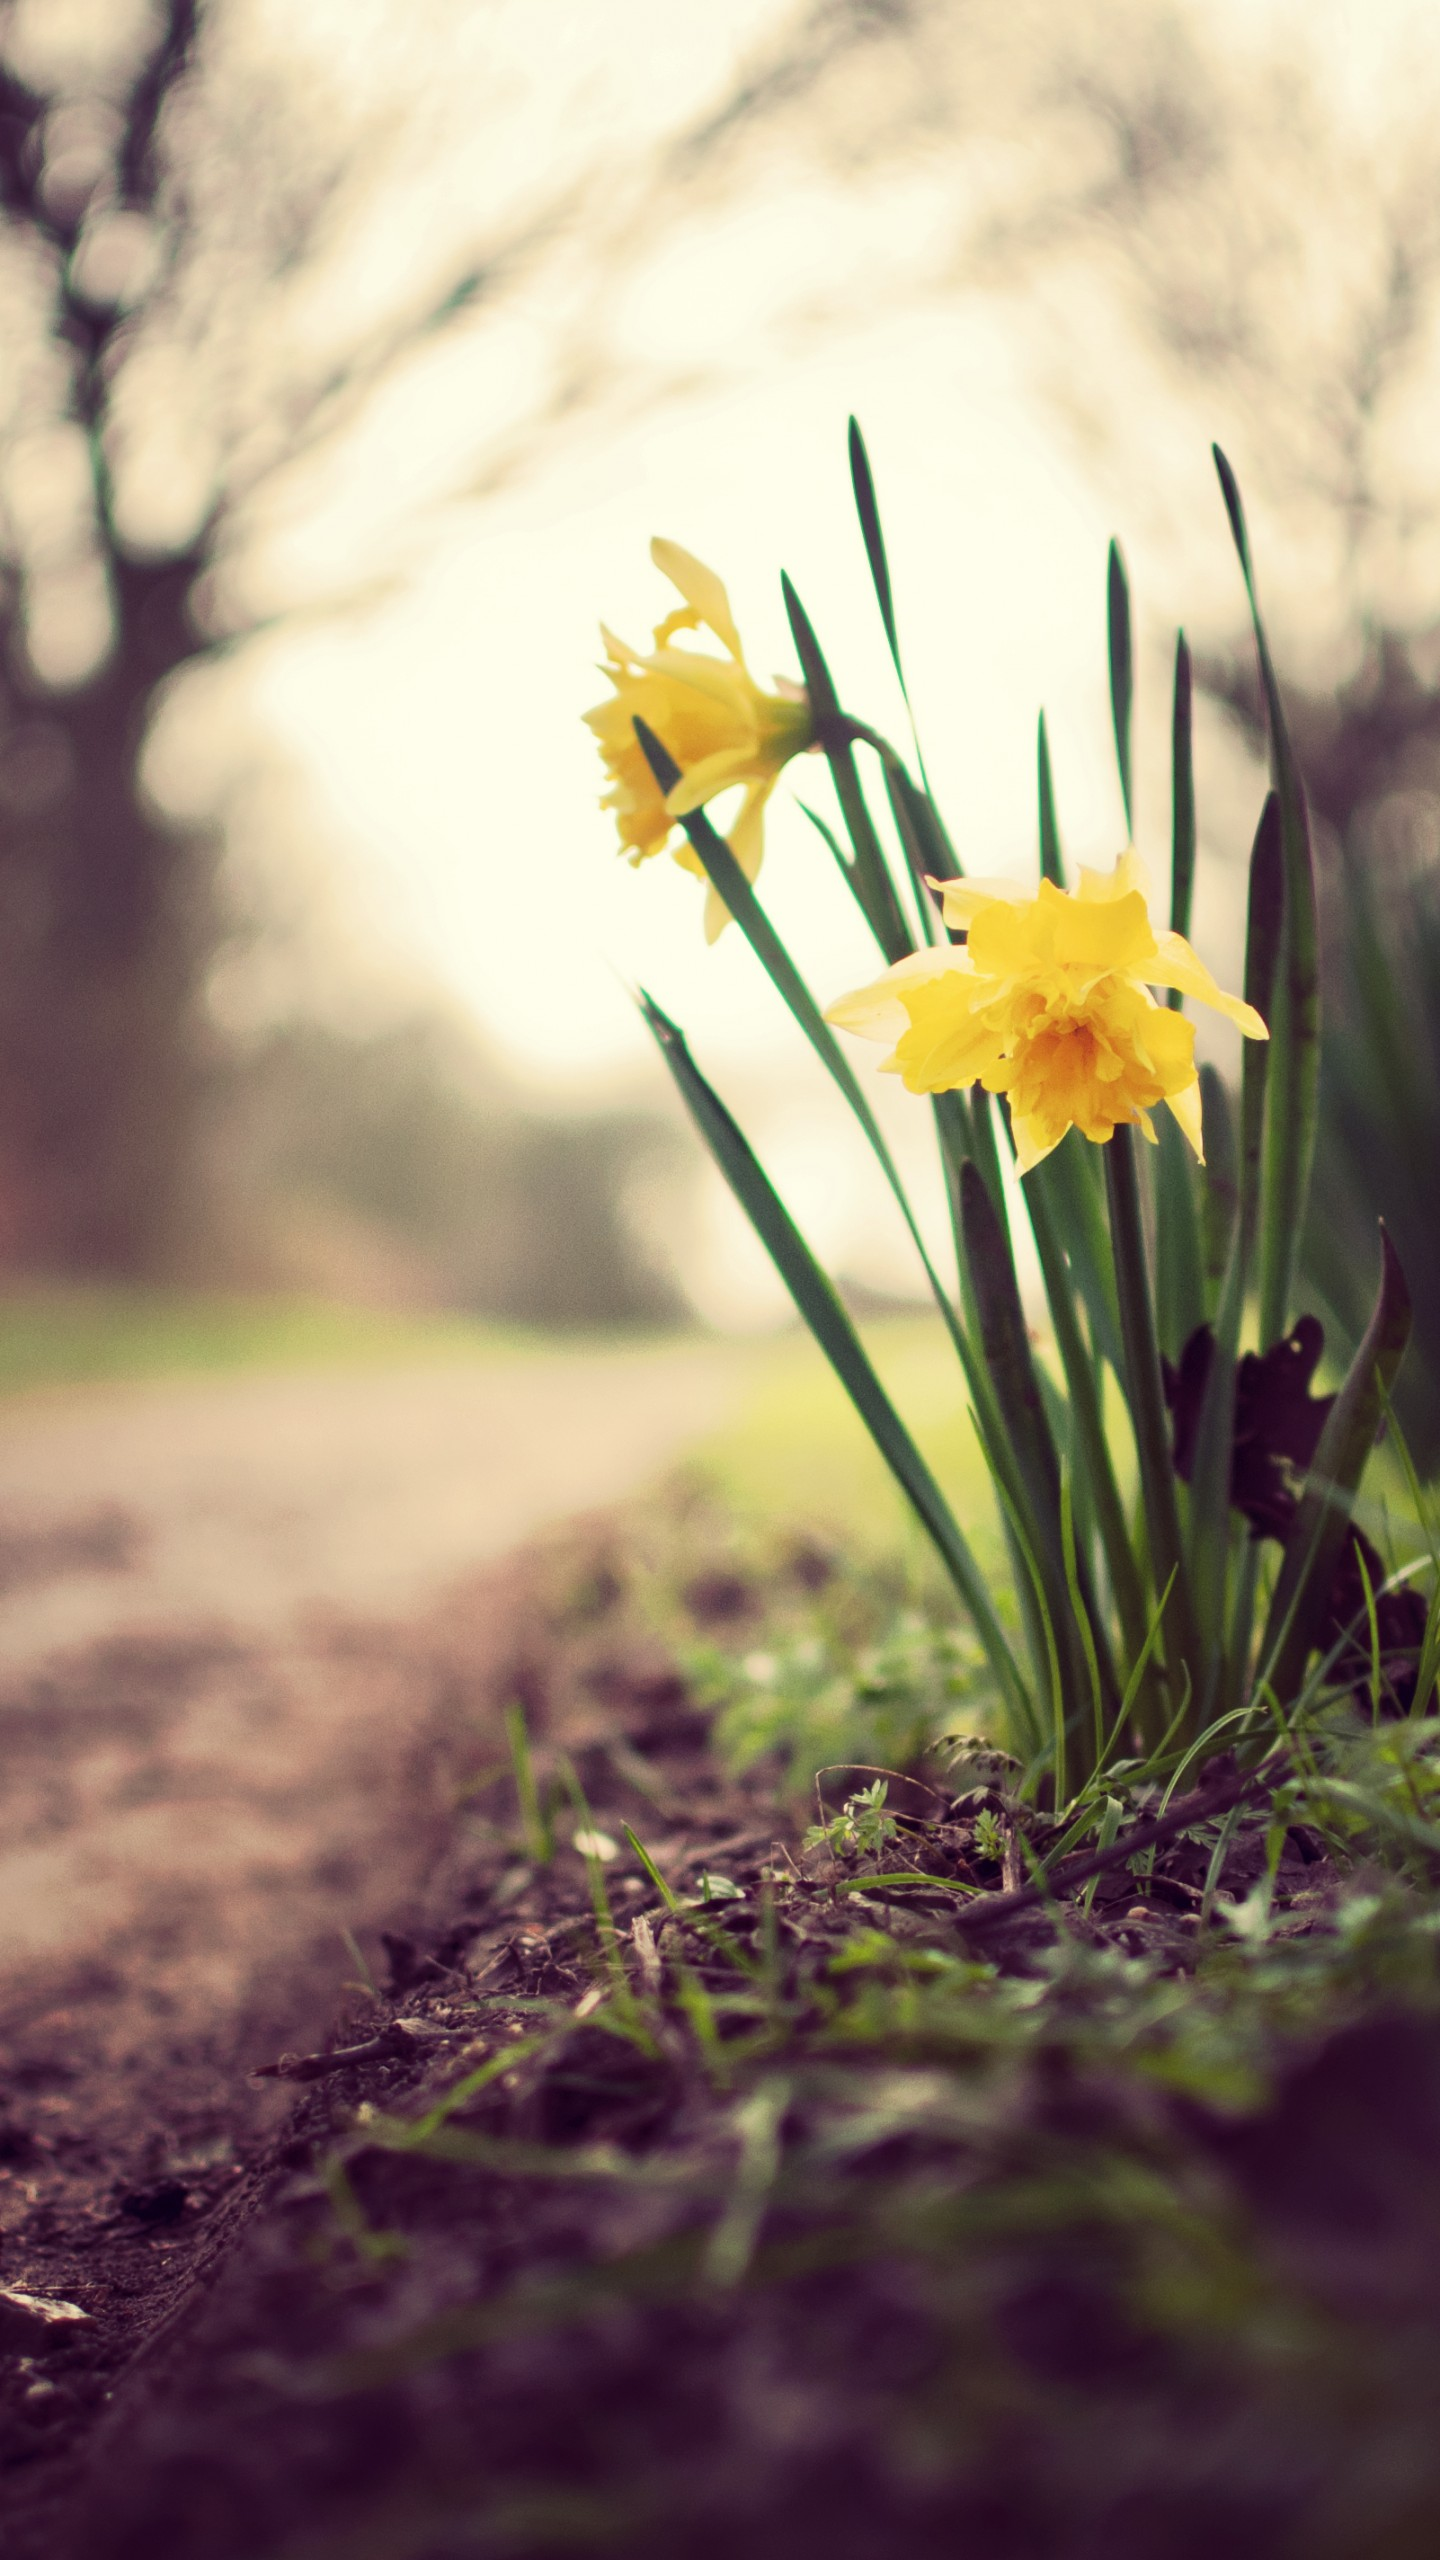 Wallpaper Daffodils 5k 4k Wallpaper Flowers Spring